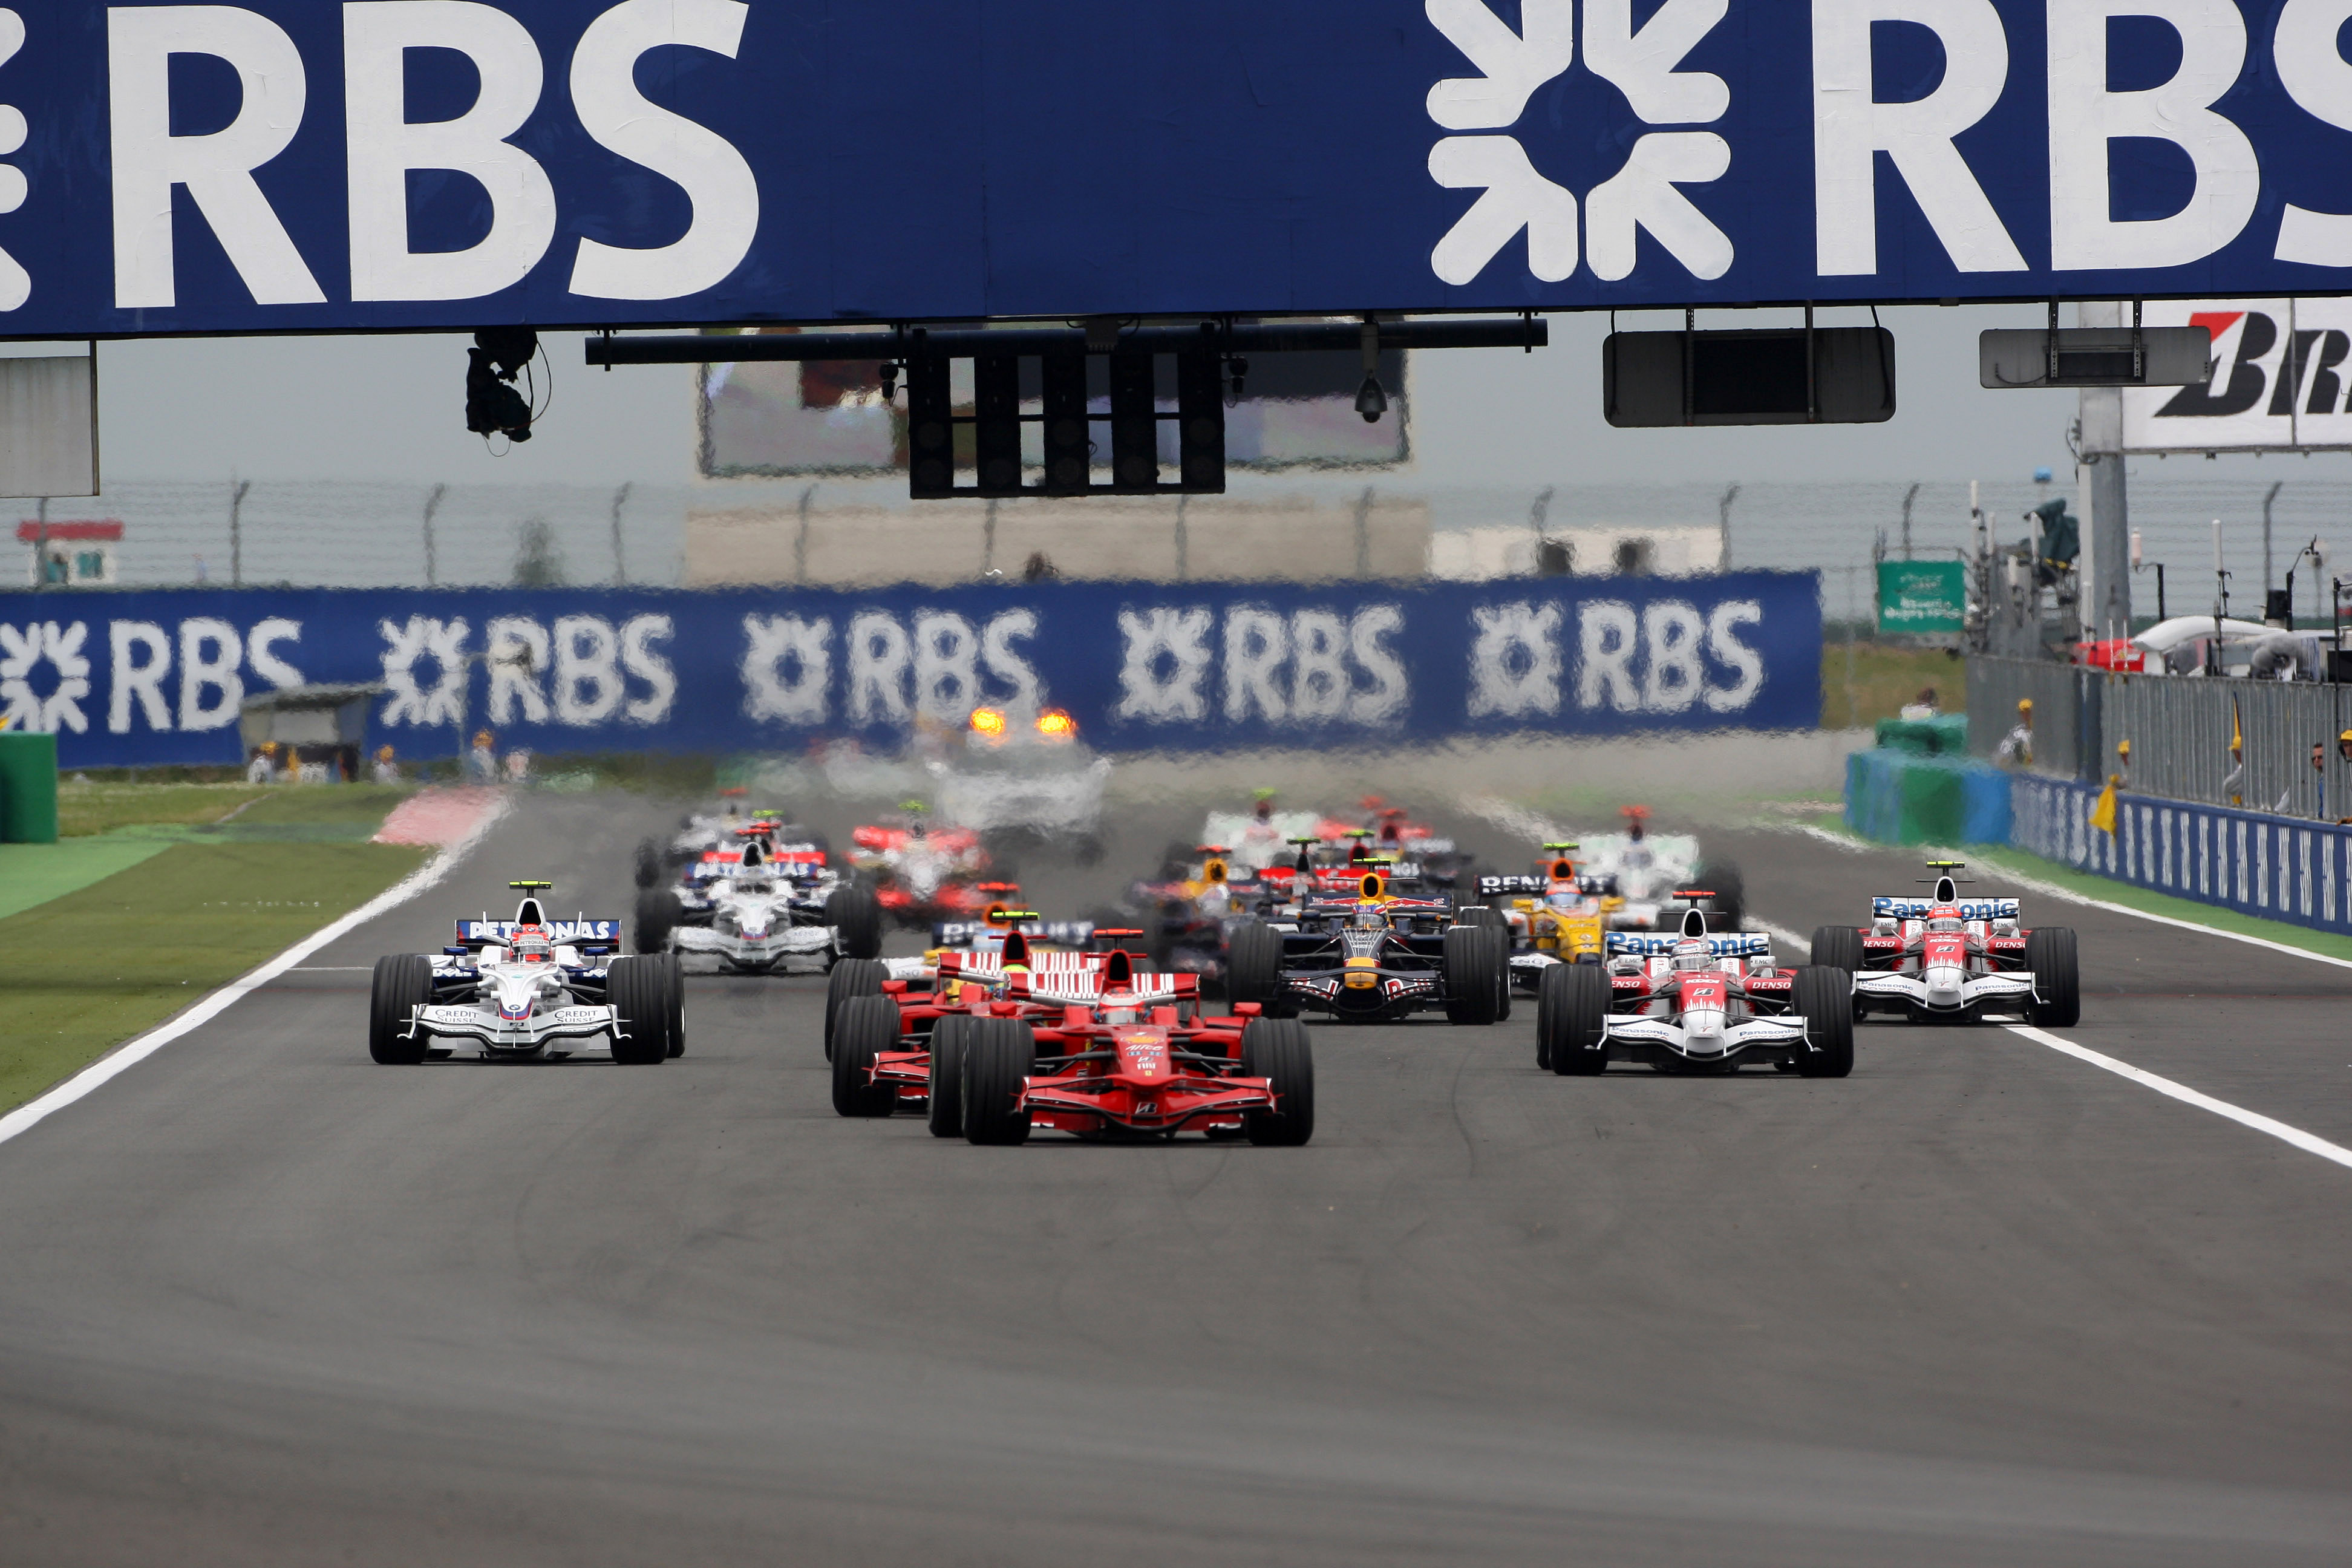 F1 When Is The Formula 1 French Grand Prix And How Can I Watch It Nuu News